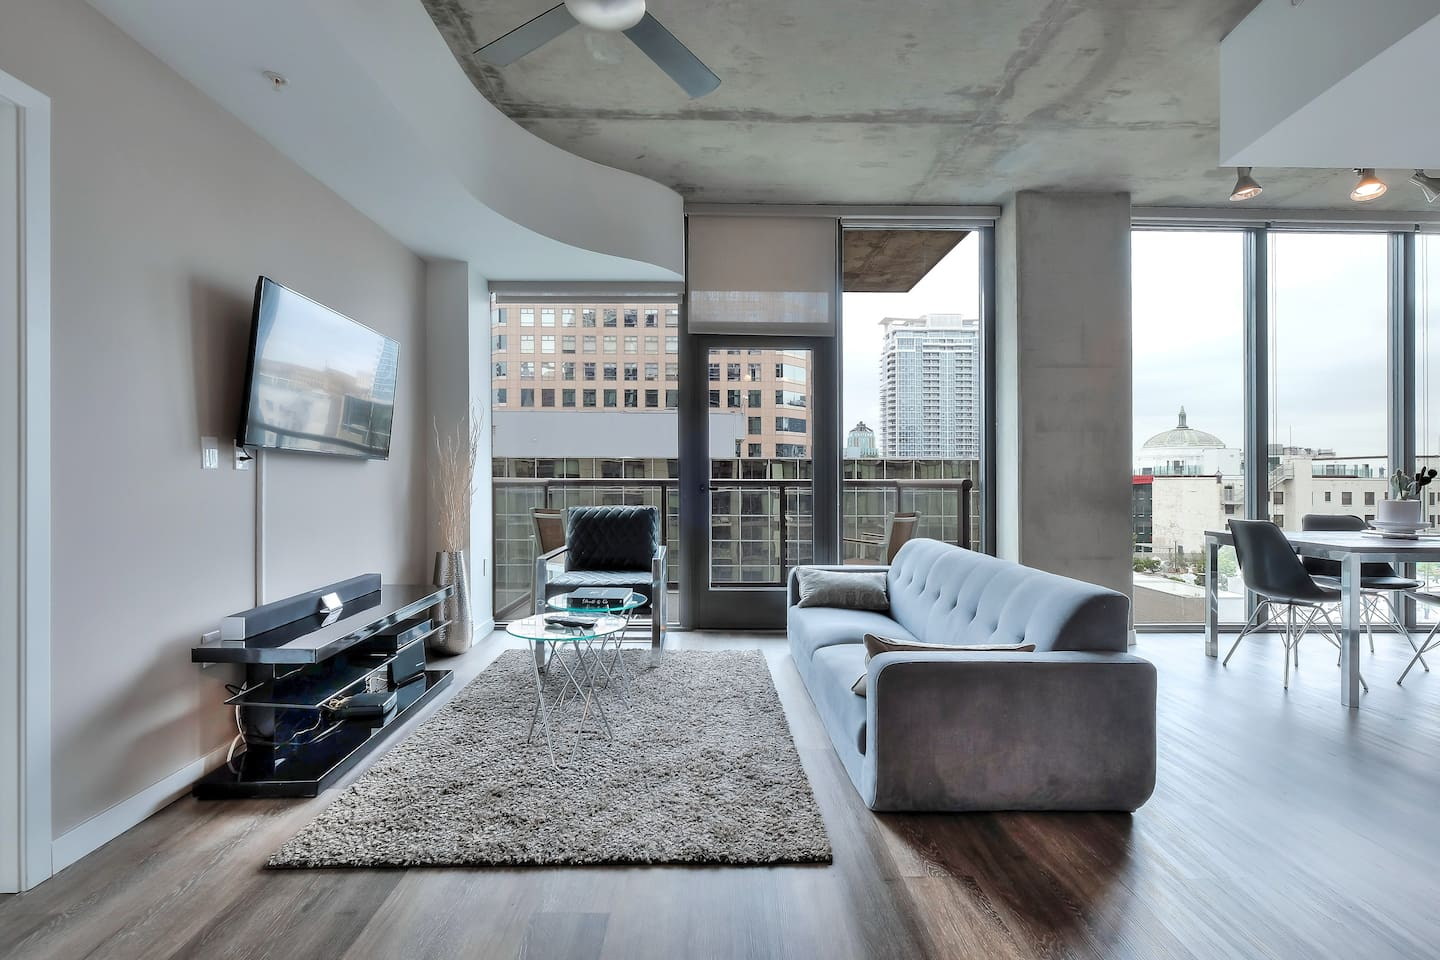 Welcome Home! 2BR/2BA Urban Flat with Stunning City Views!